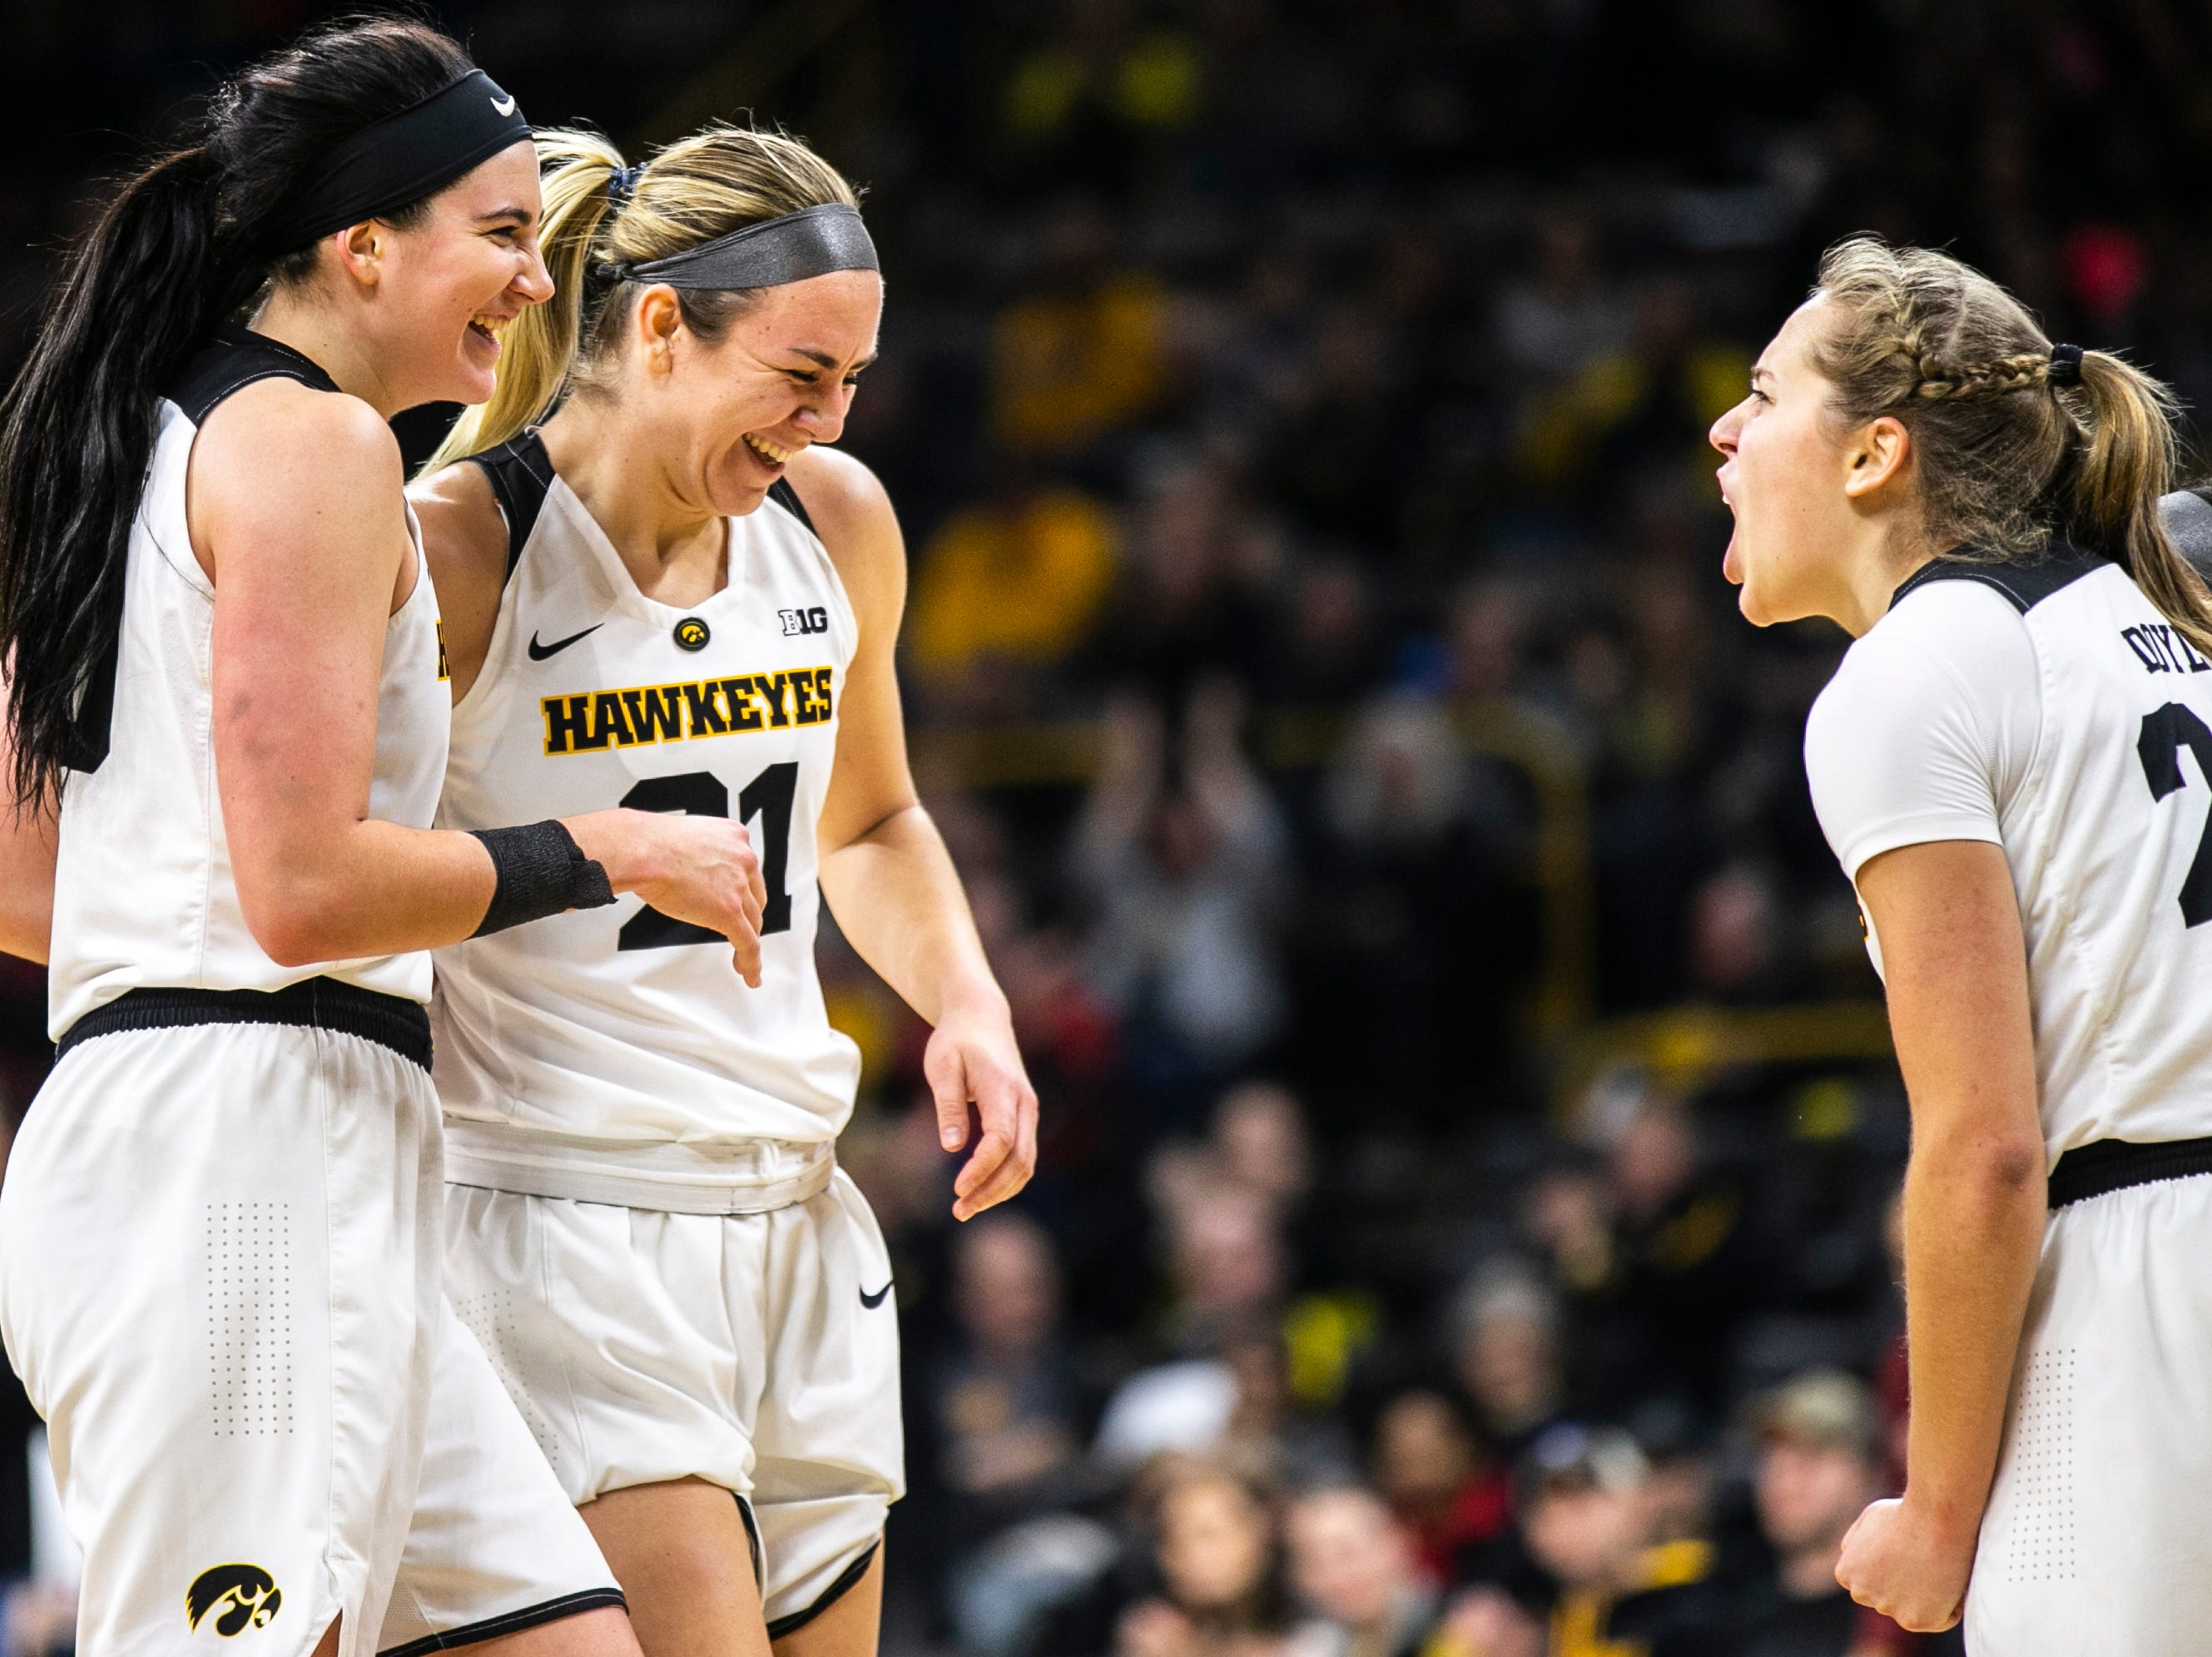 Iowa forward Hannah Stewart (21) is embraced by Megan Gustafson, left, while Kathleen Doyle, right, celebrates during a NCAA Big Ten Conference women's basketball game on Sunday, Jan. 27, 2019, at Carver-Hawkeye Arena in Iowa City, Iowa.